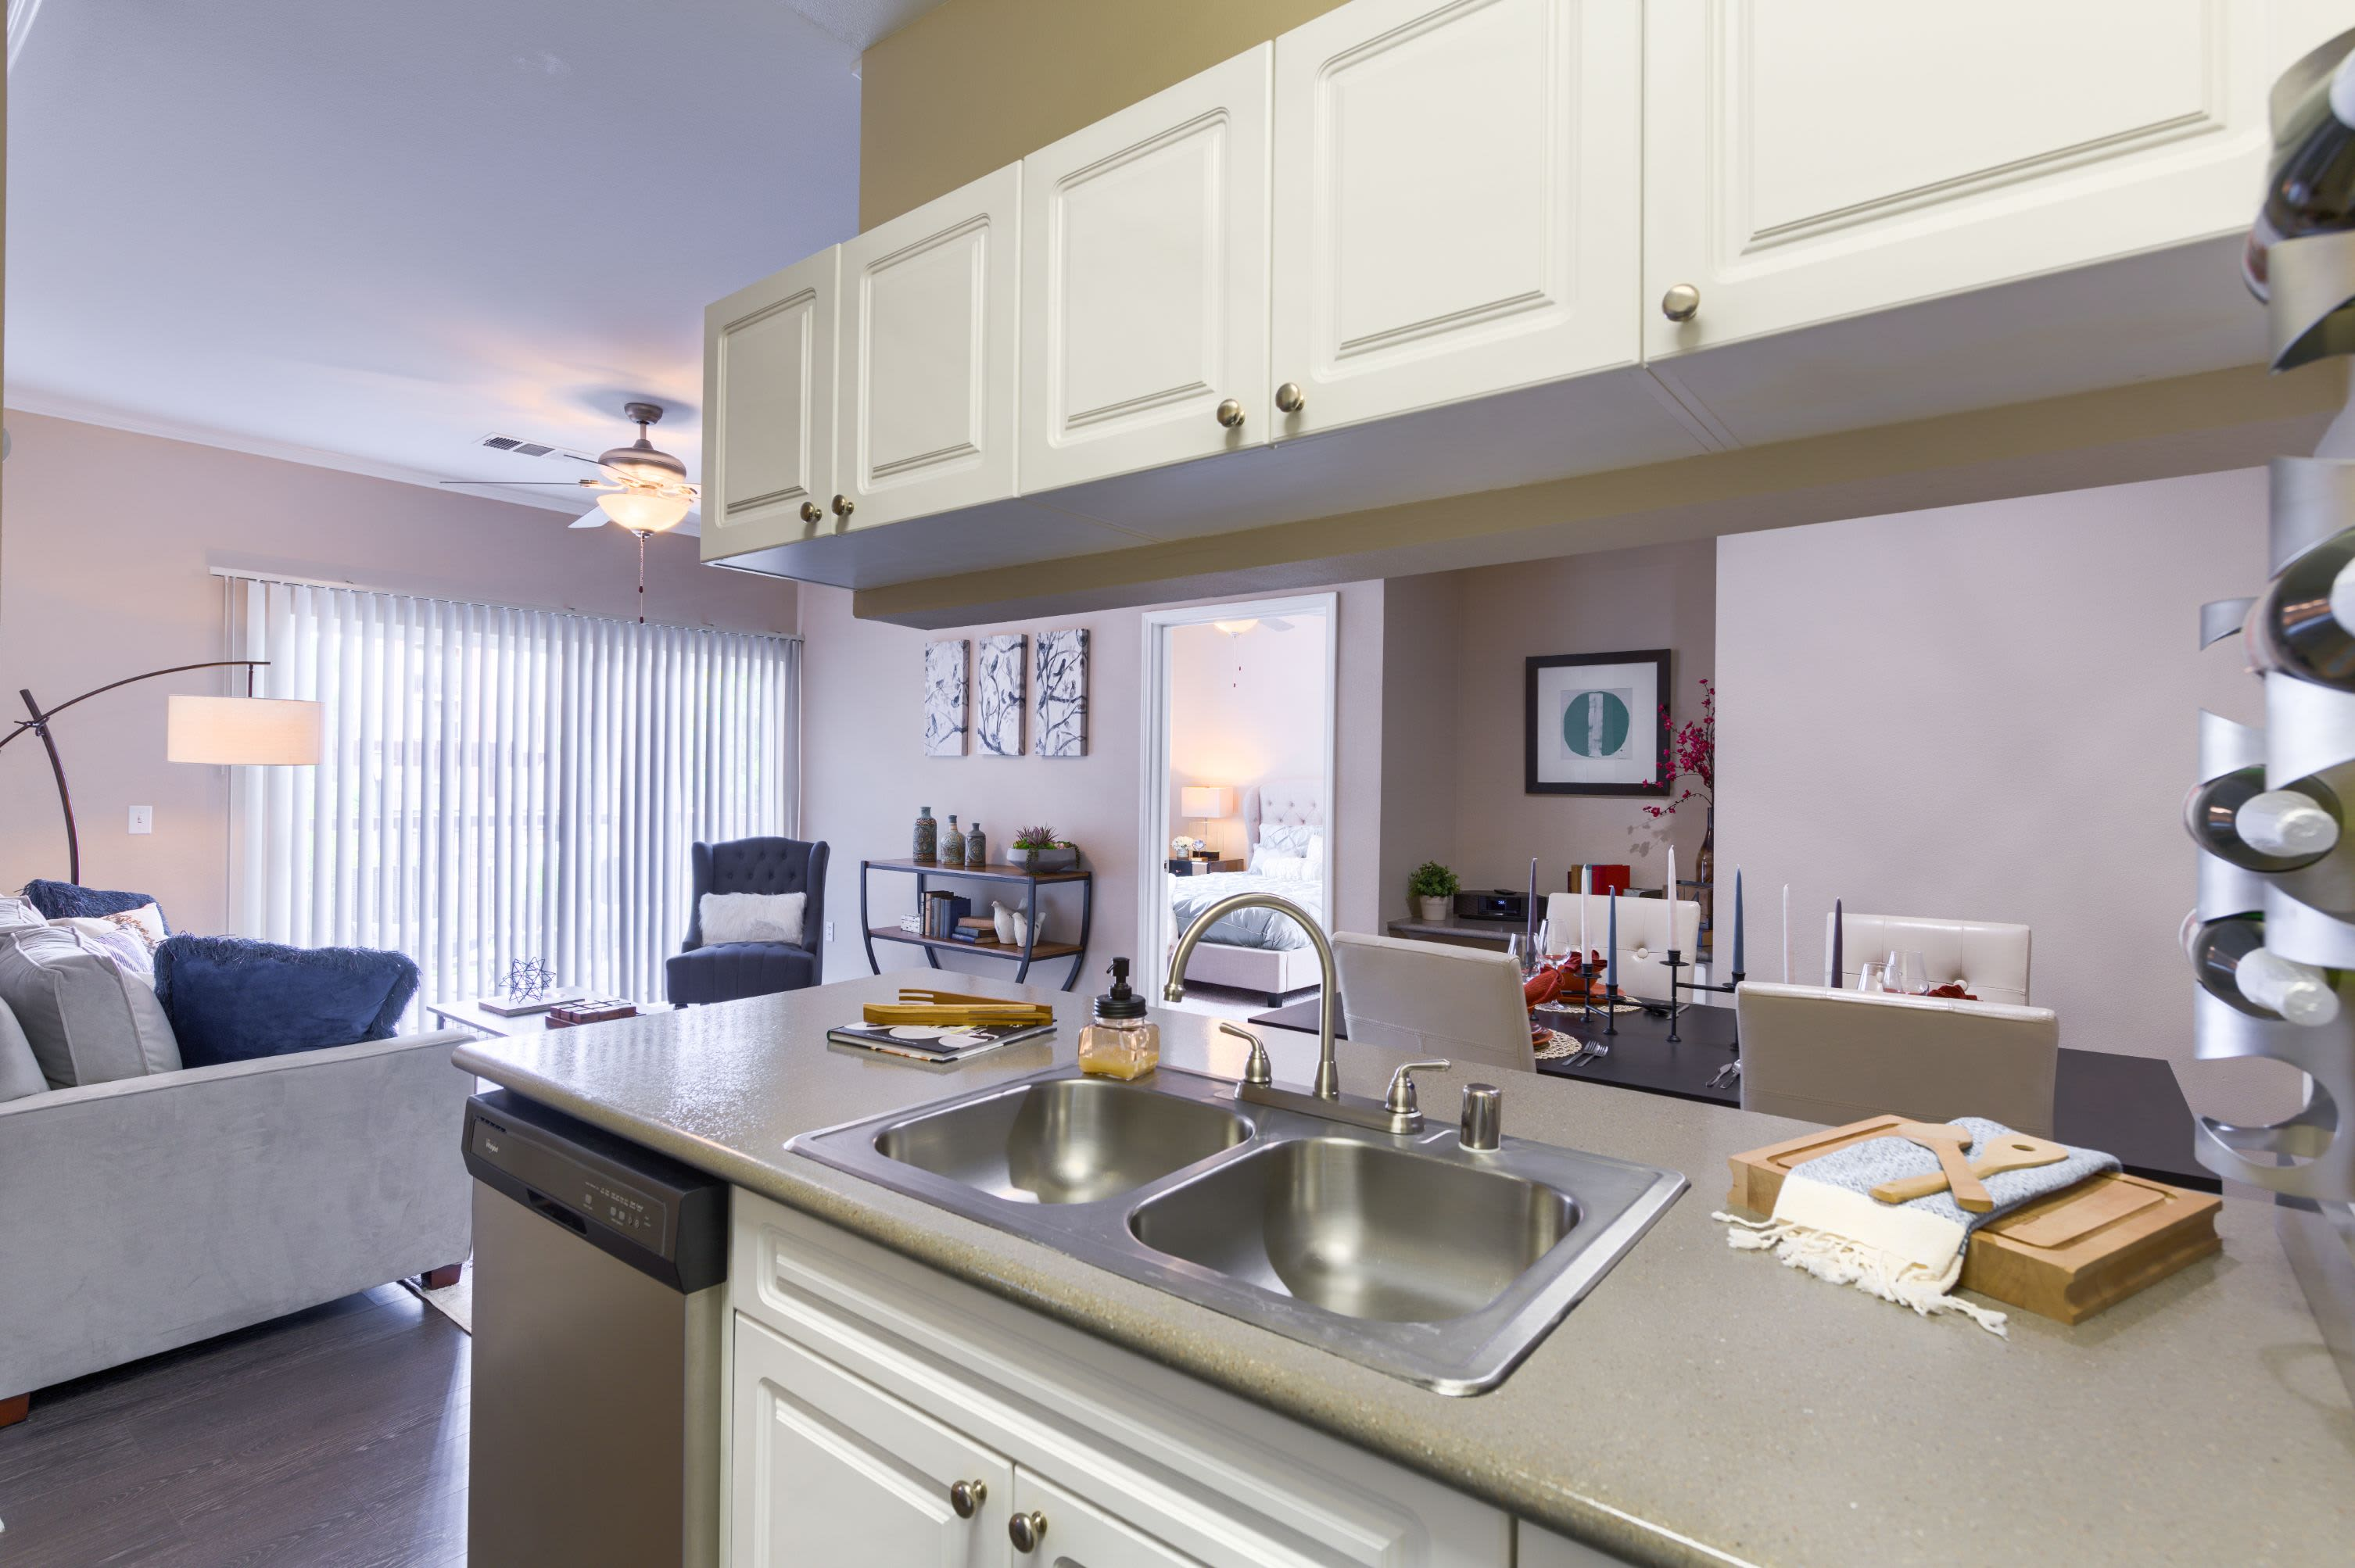 Modern kitchen adjacent to living area at Whisper Creek Apartment Homes in Lakewood, Colorado